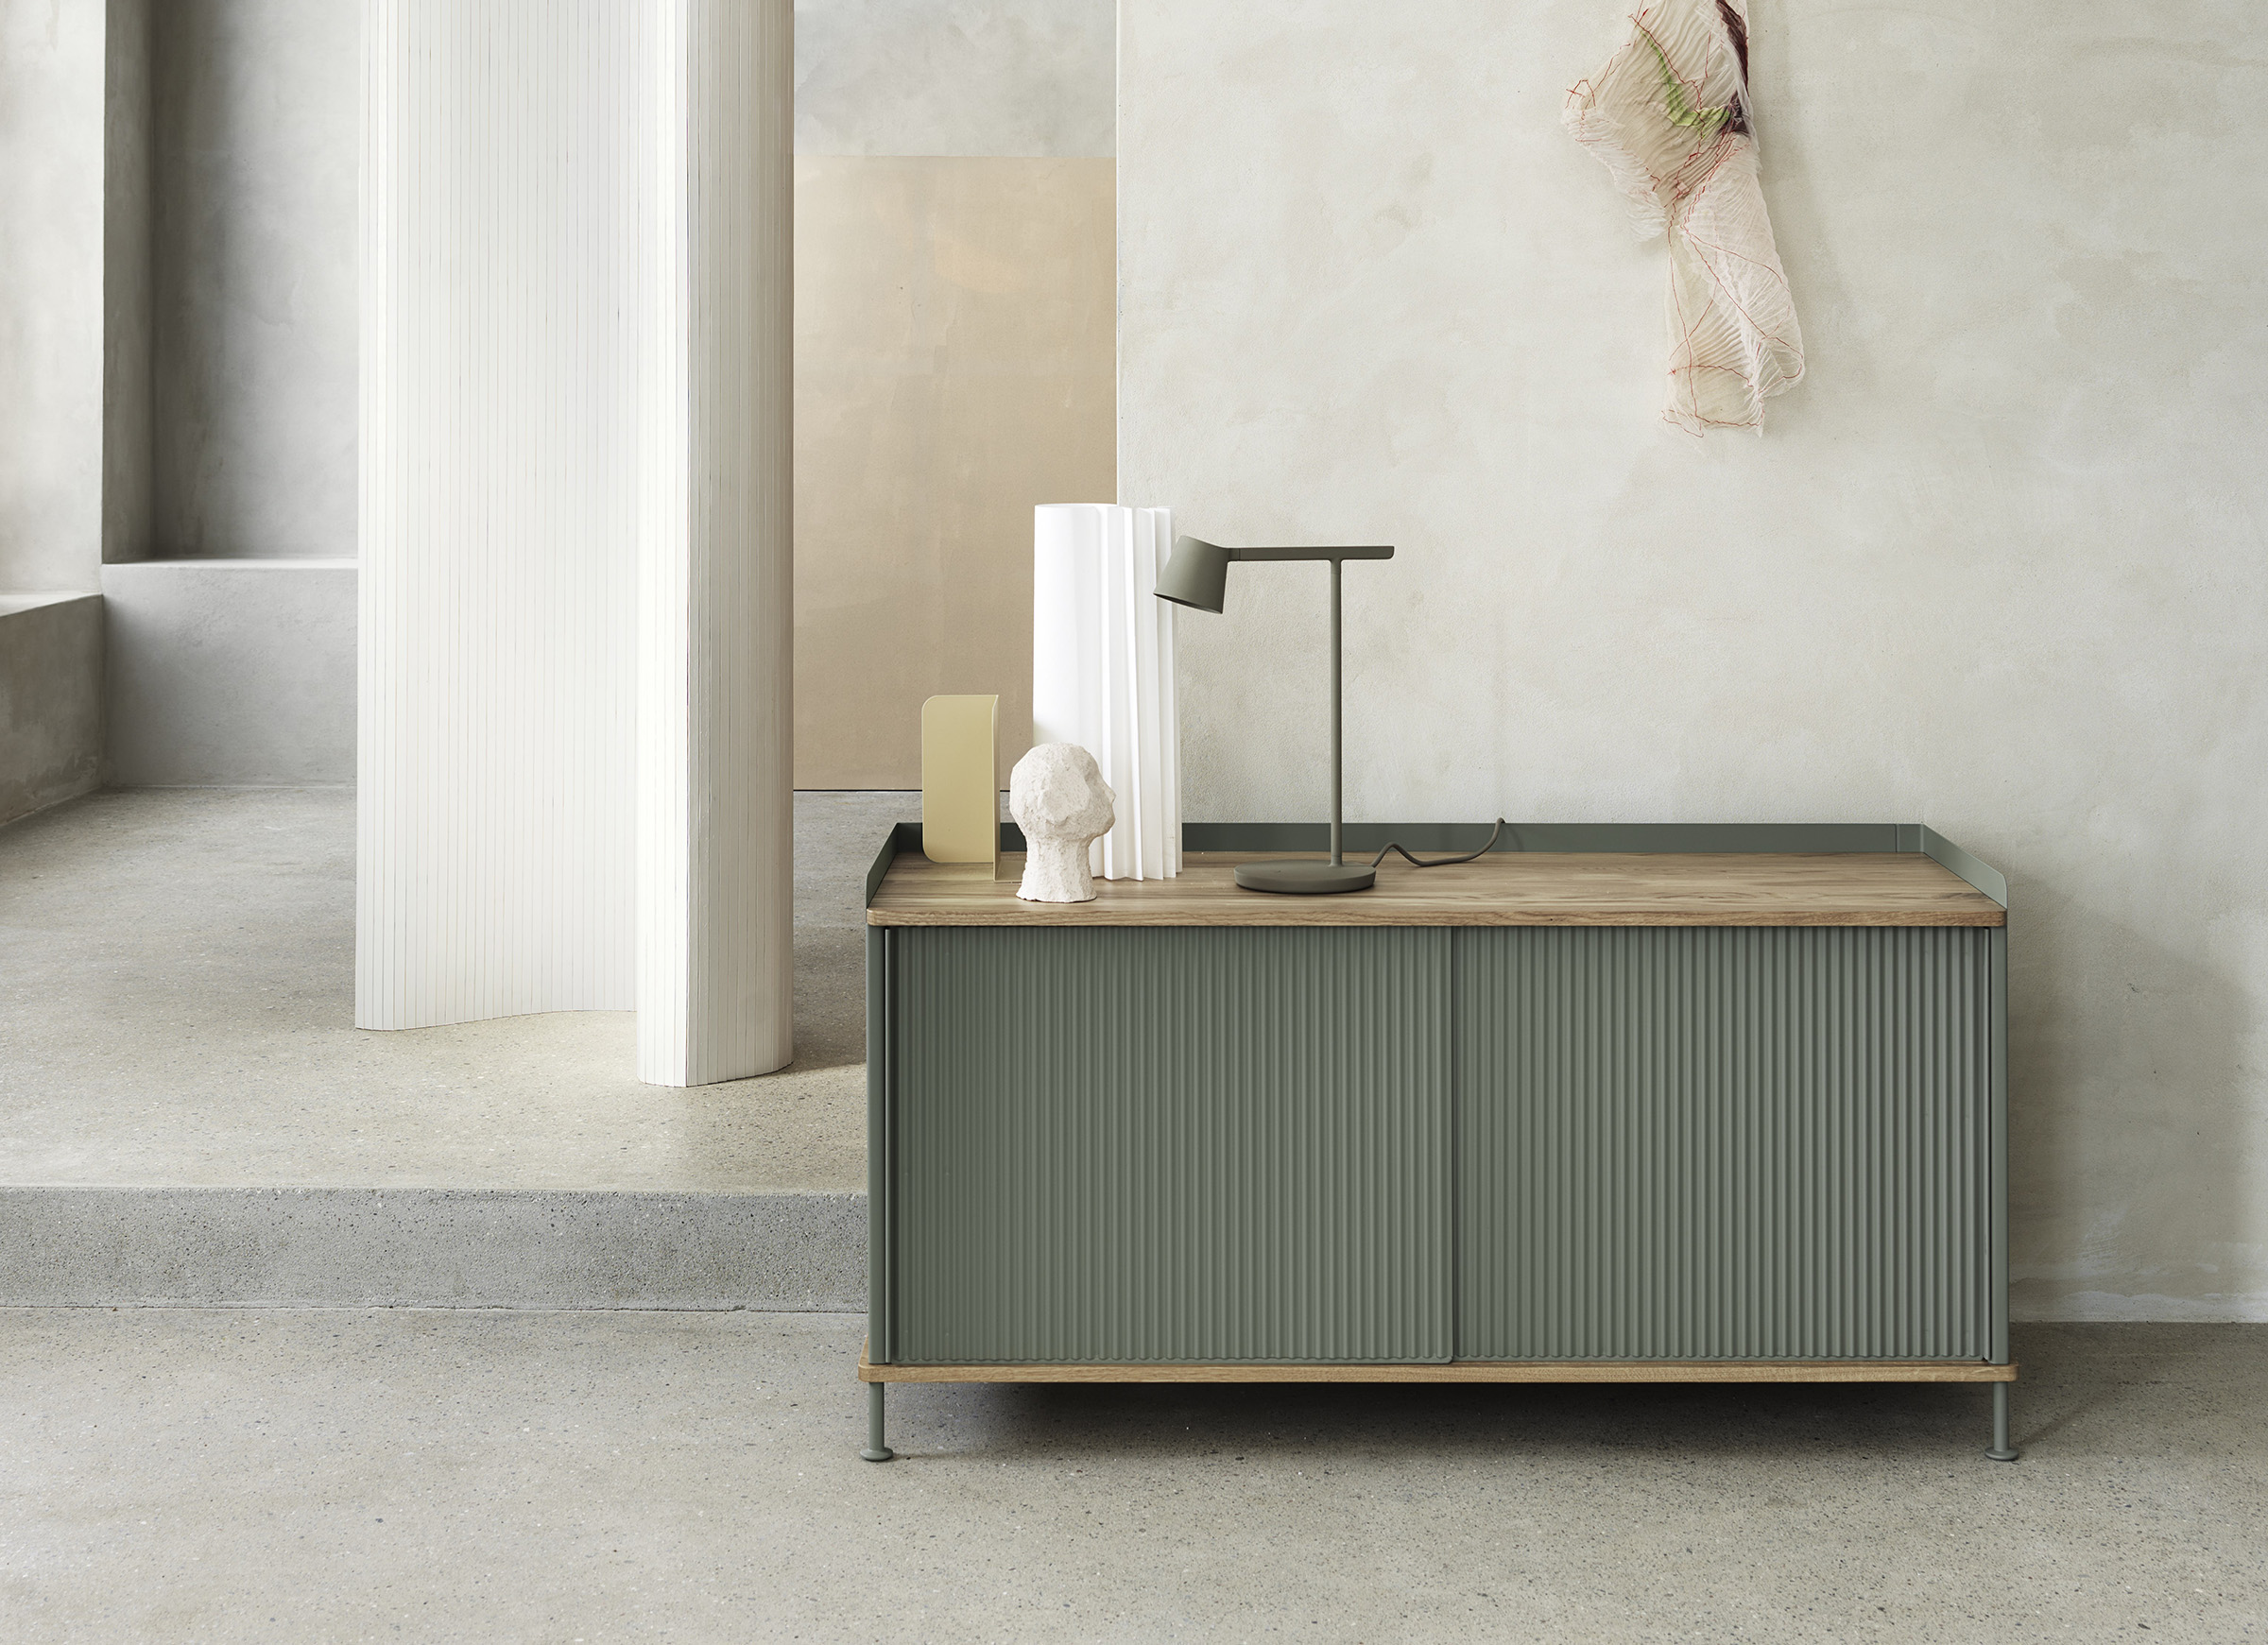 Designer Sideboards 12 Of The Best Minimal Scandinavian Style Sideboards Catesthill